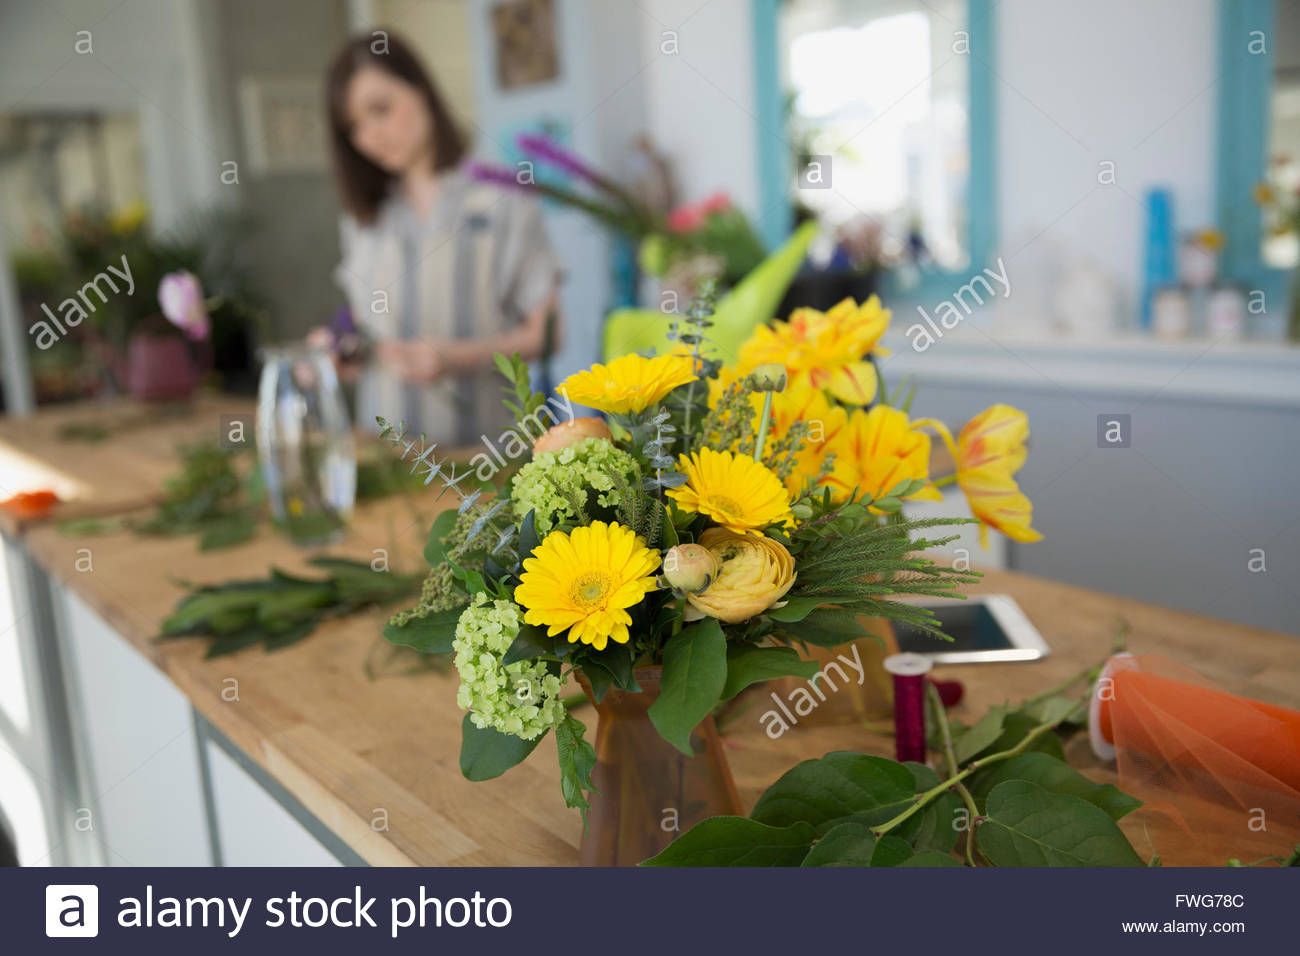 Yellow bouquet on counter in florist shop Stock Photo